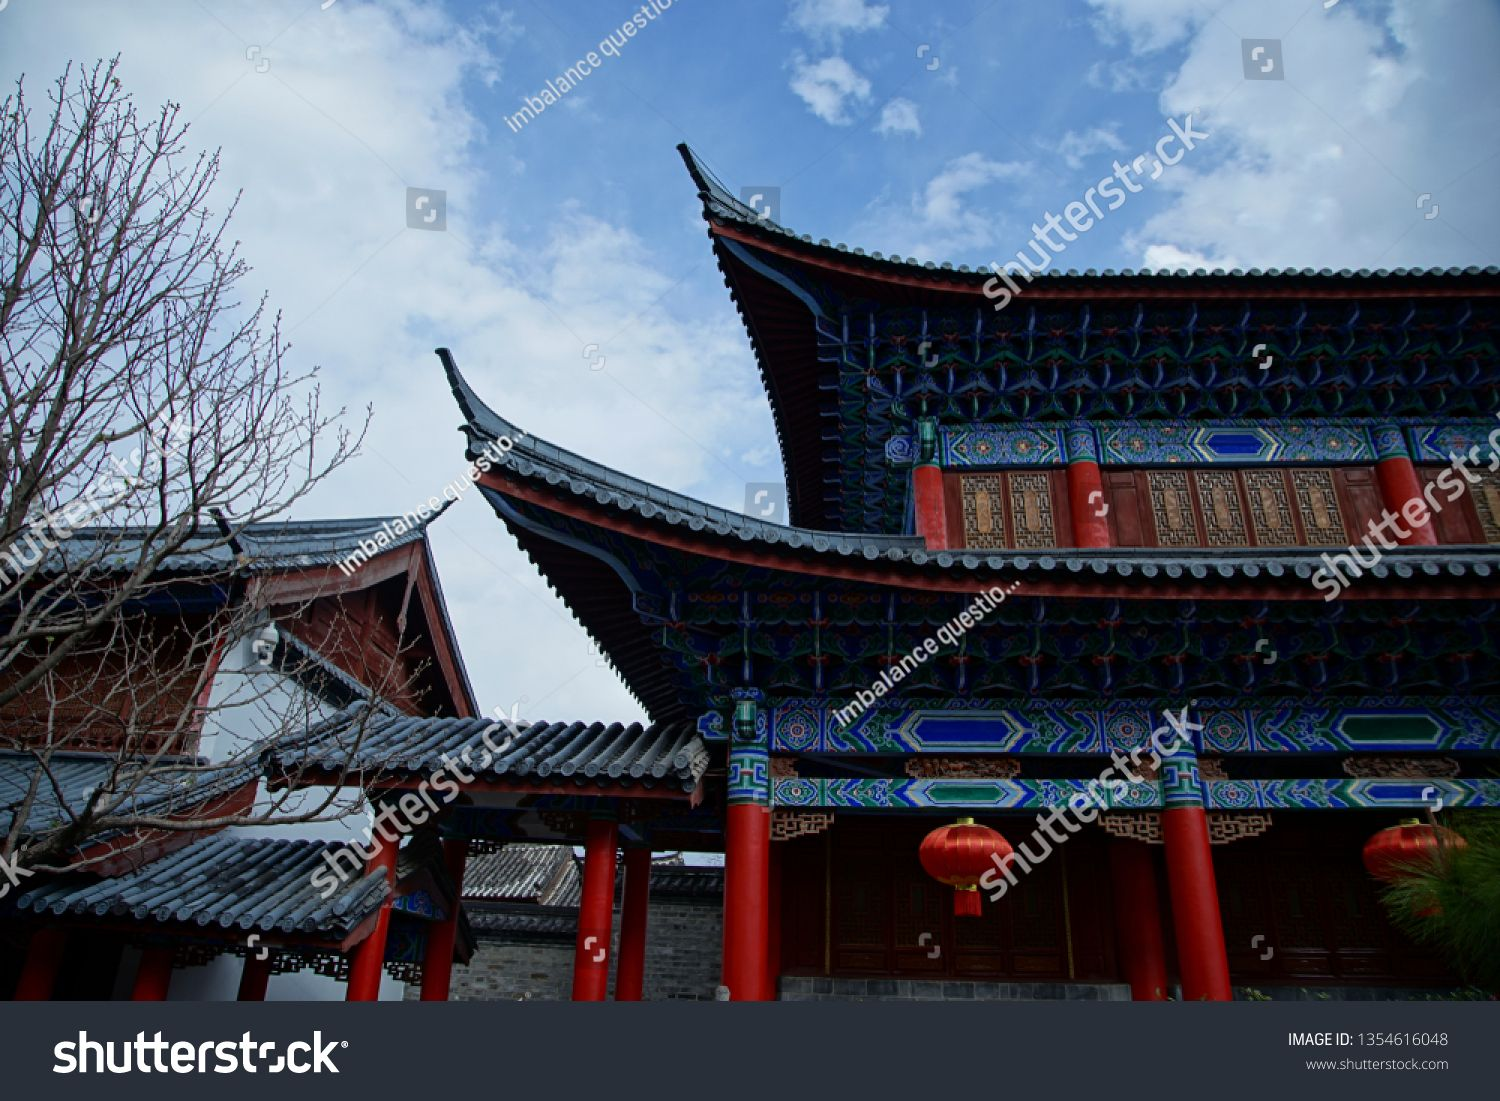 Traditional Chinese Architecture Building Landmarks China Sponsored Sponsored Architecture Chines Chinese Architecture Architecture Building Architecture